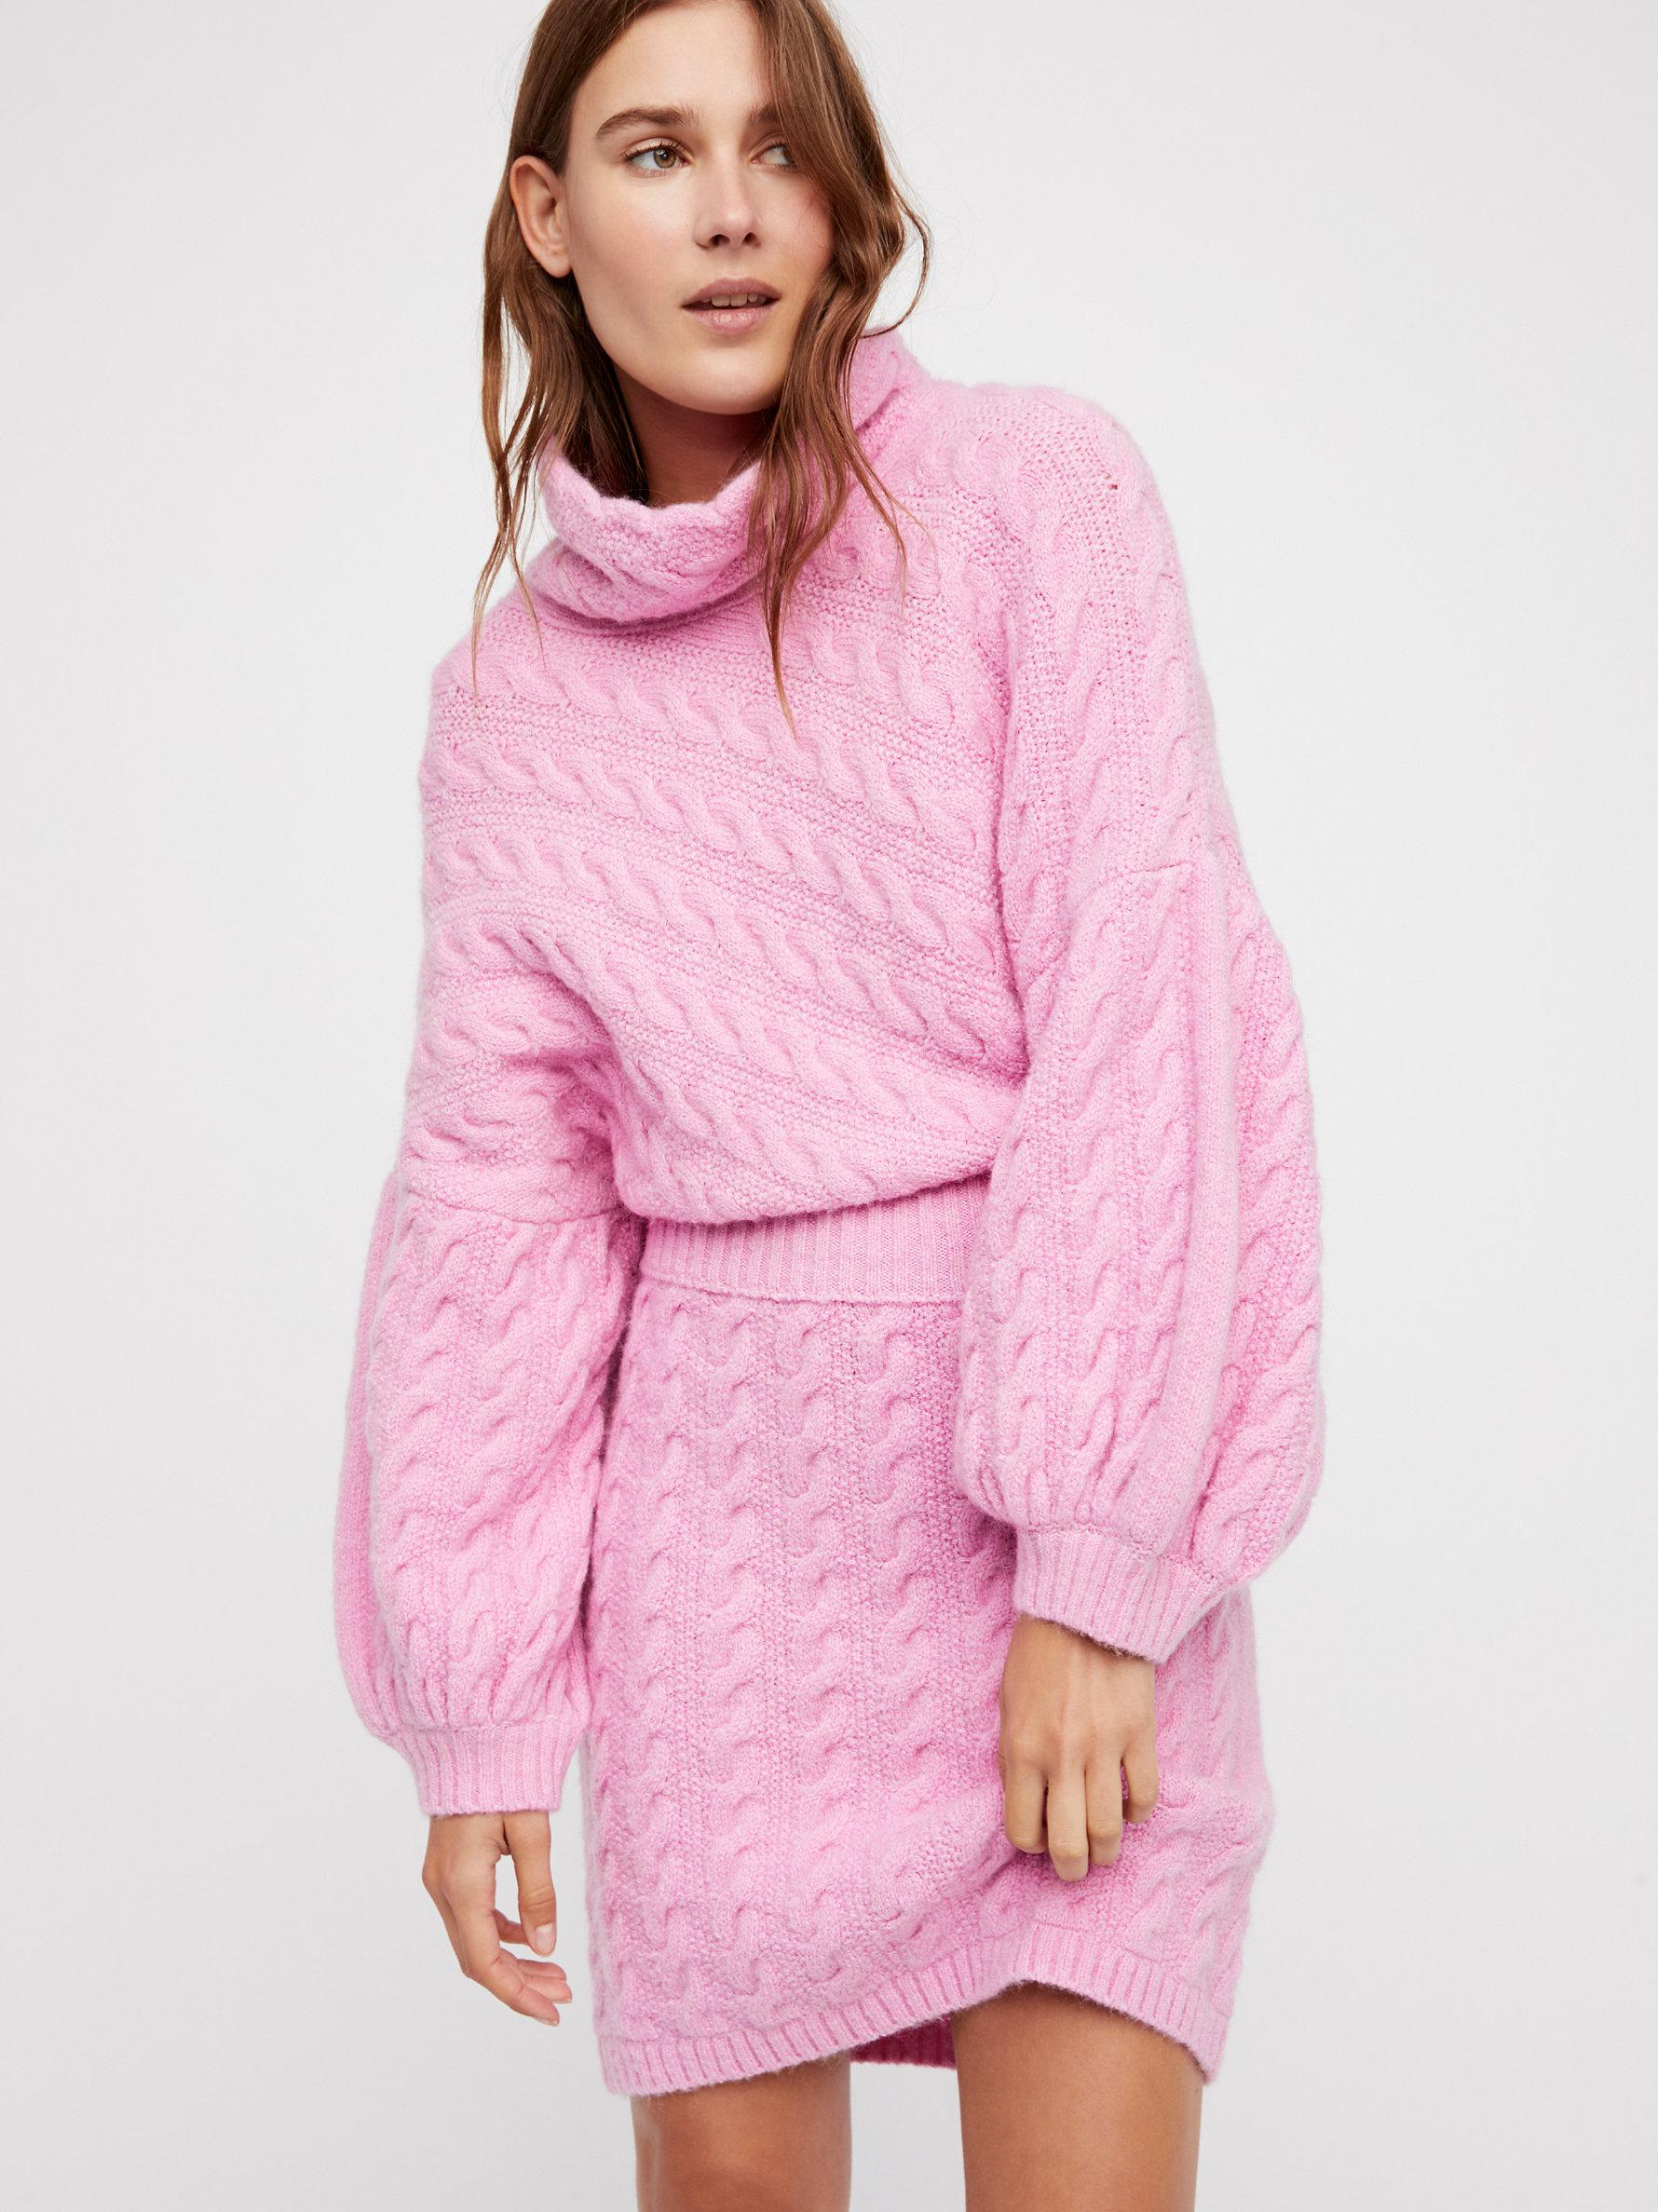 60e24d7d7e45 Lyst - Free People Meant To Be Jumper Dress in Pink